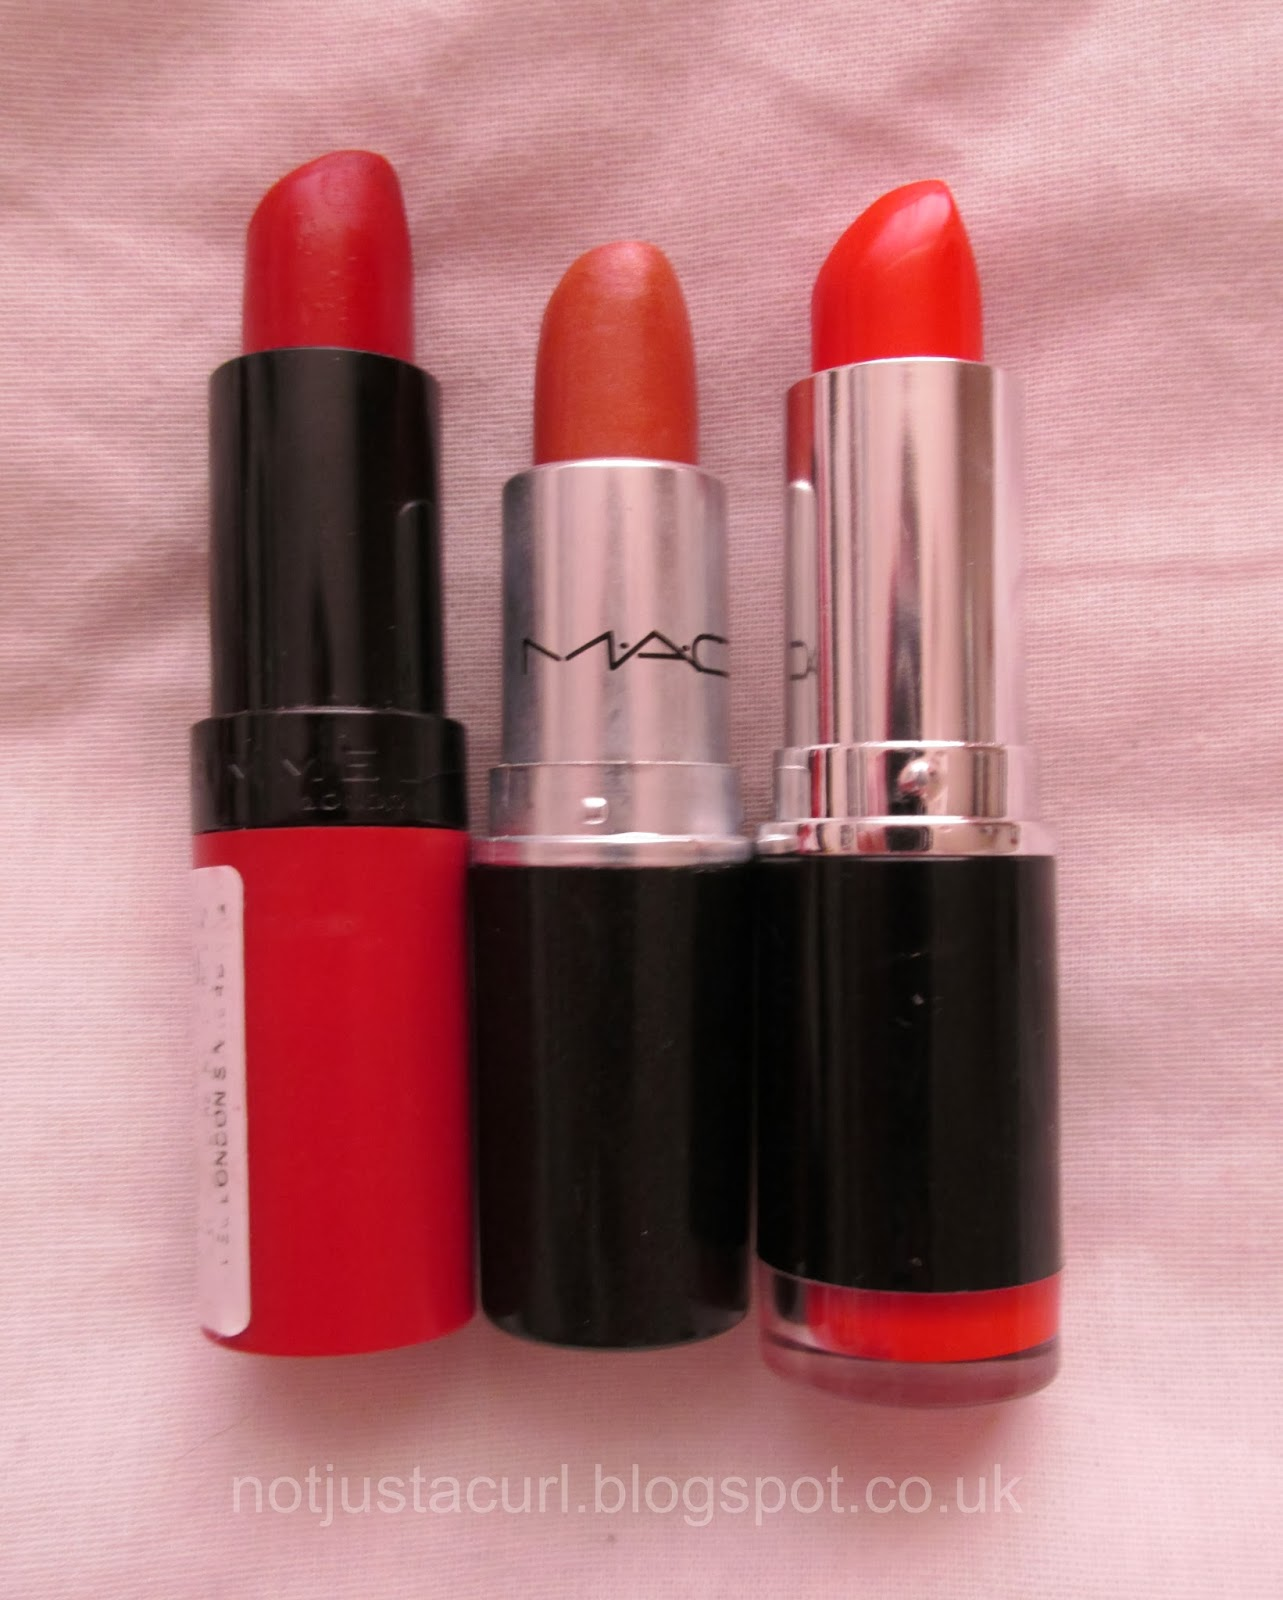 A photo of my lipsticks.